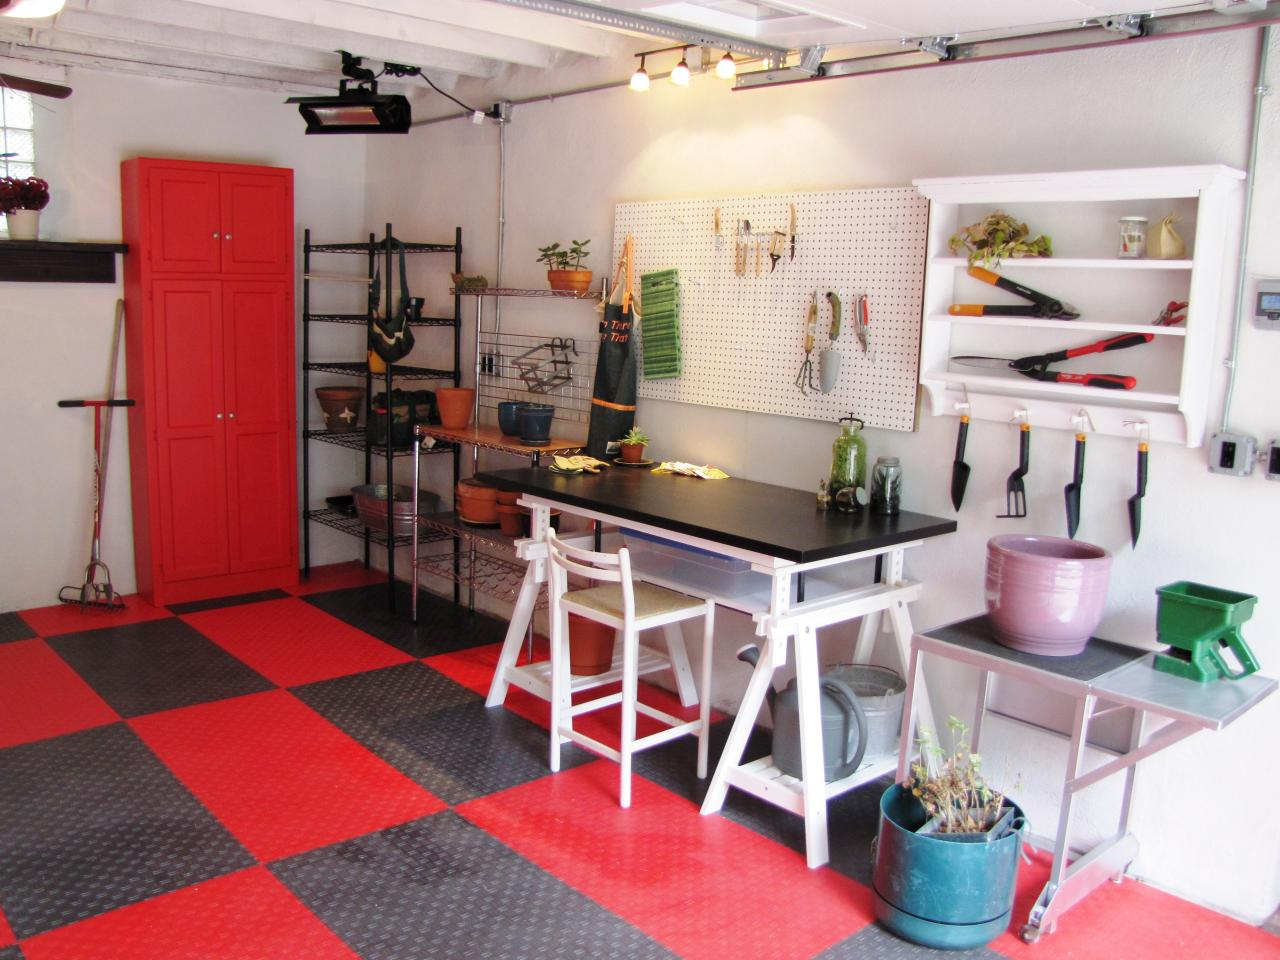 Rubber Flooring In Kitchen Where Should You Use Rubber Flooring Diy